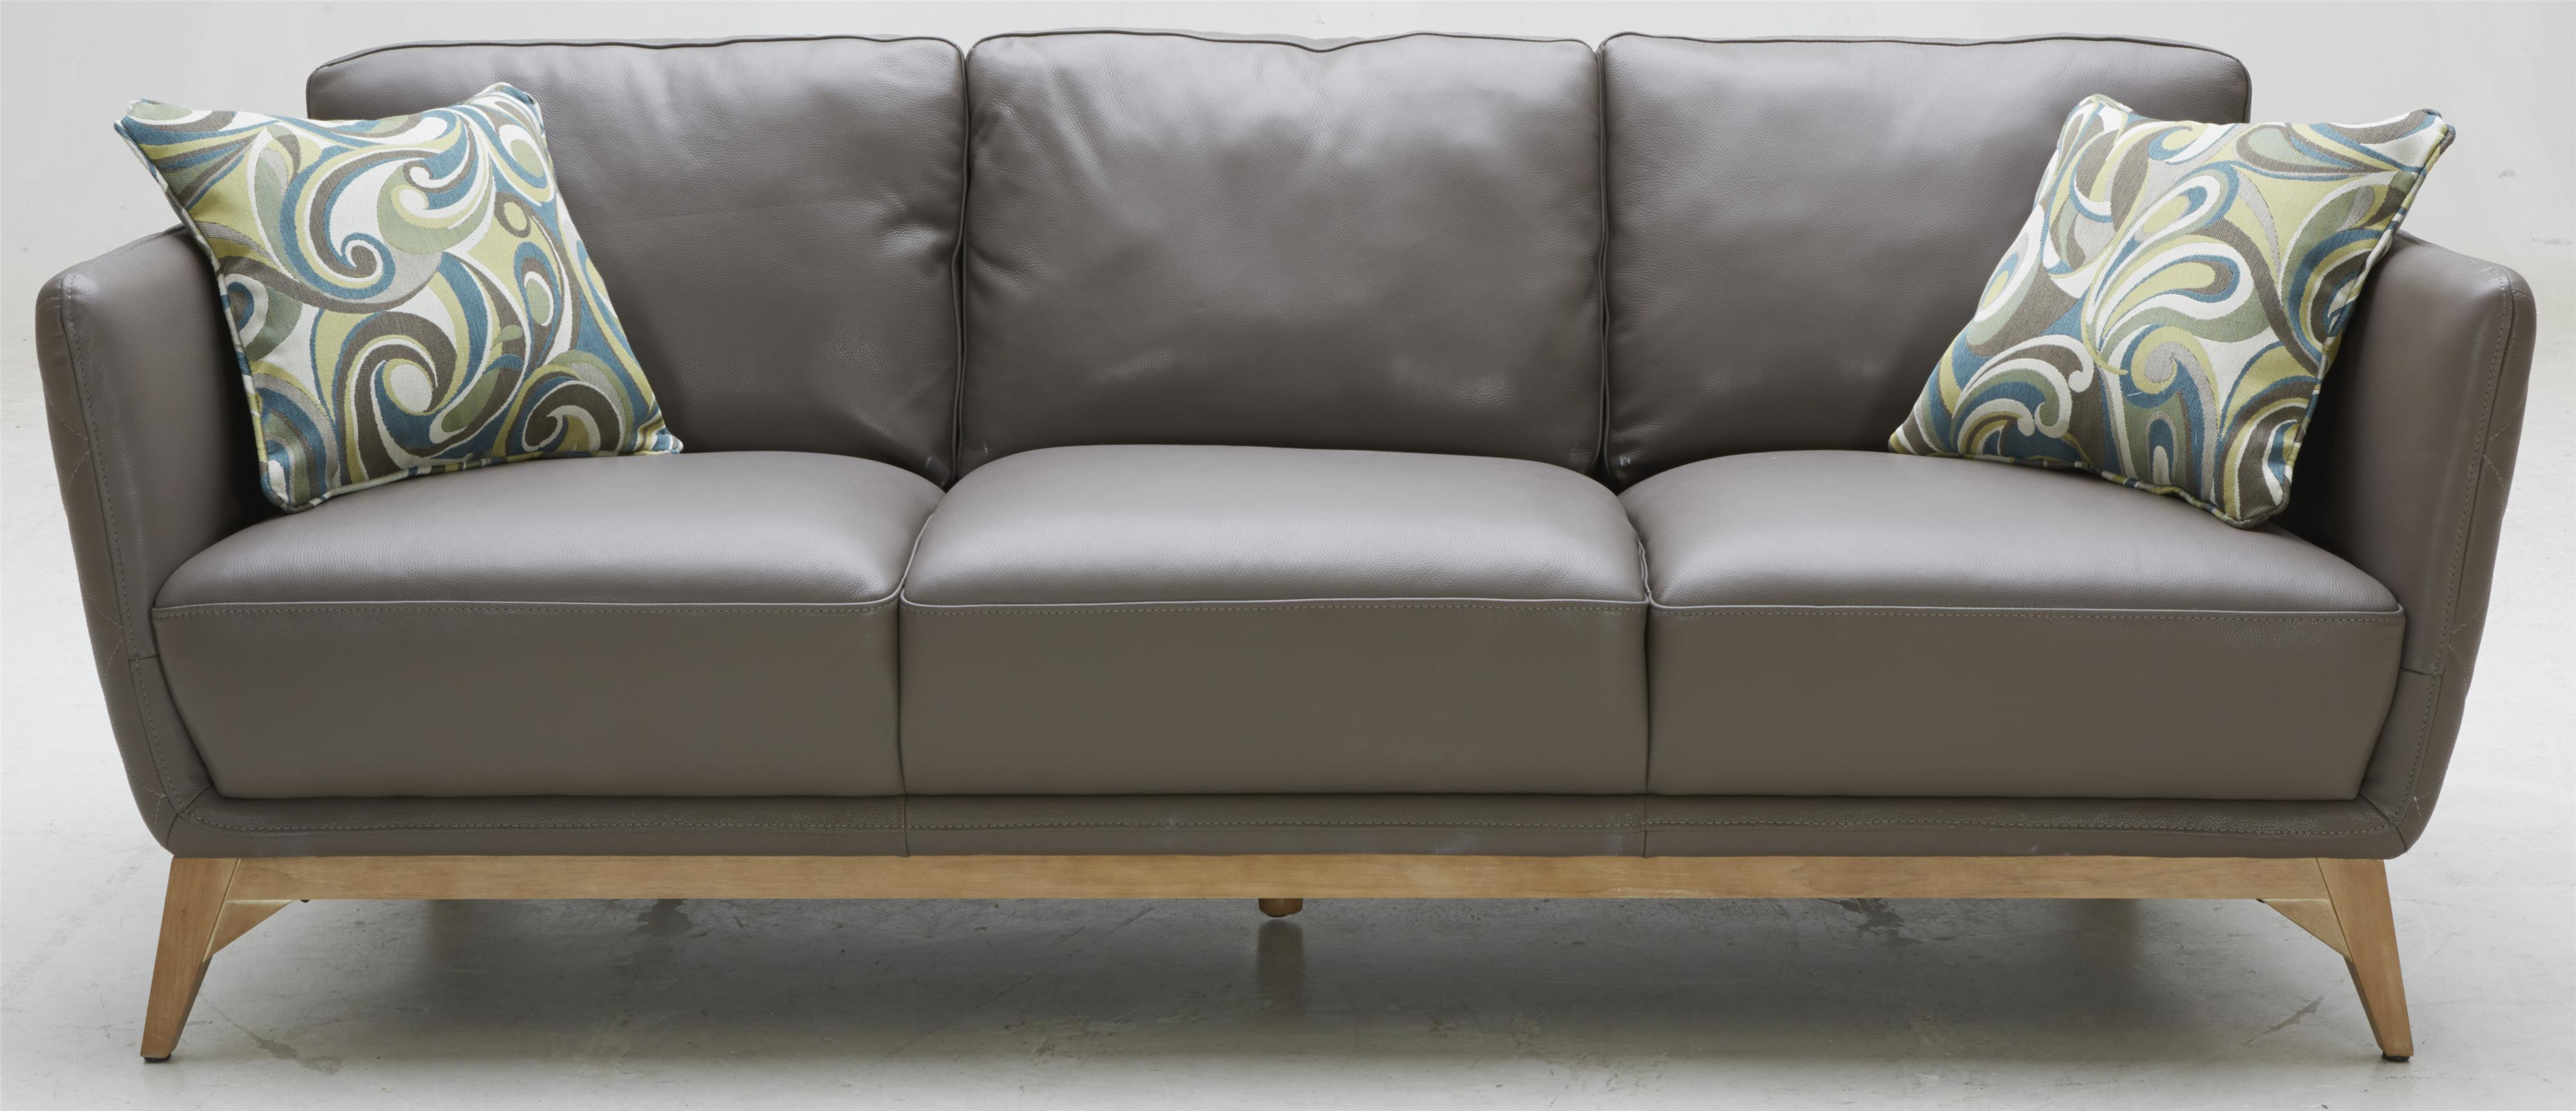 1961 Sofa by Warehouse M at Pilgrim Furniture City